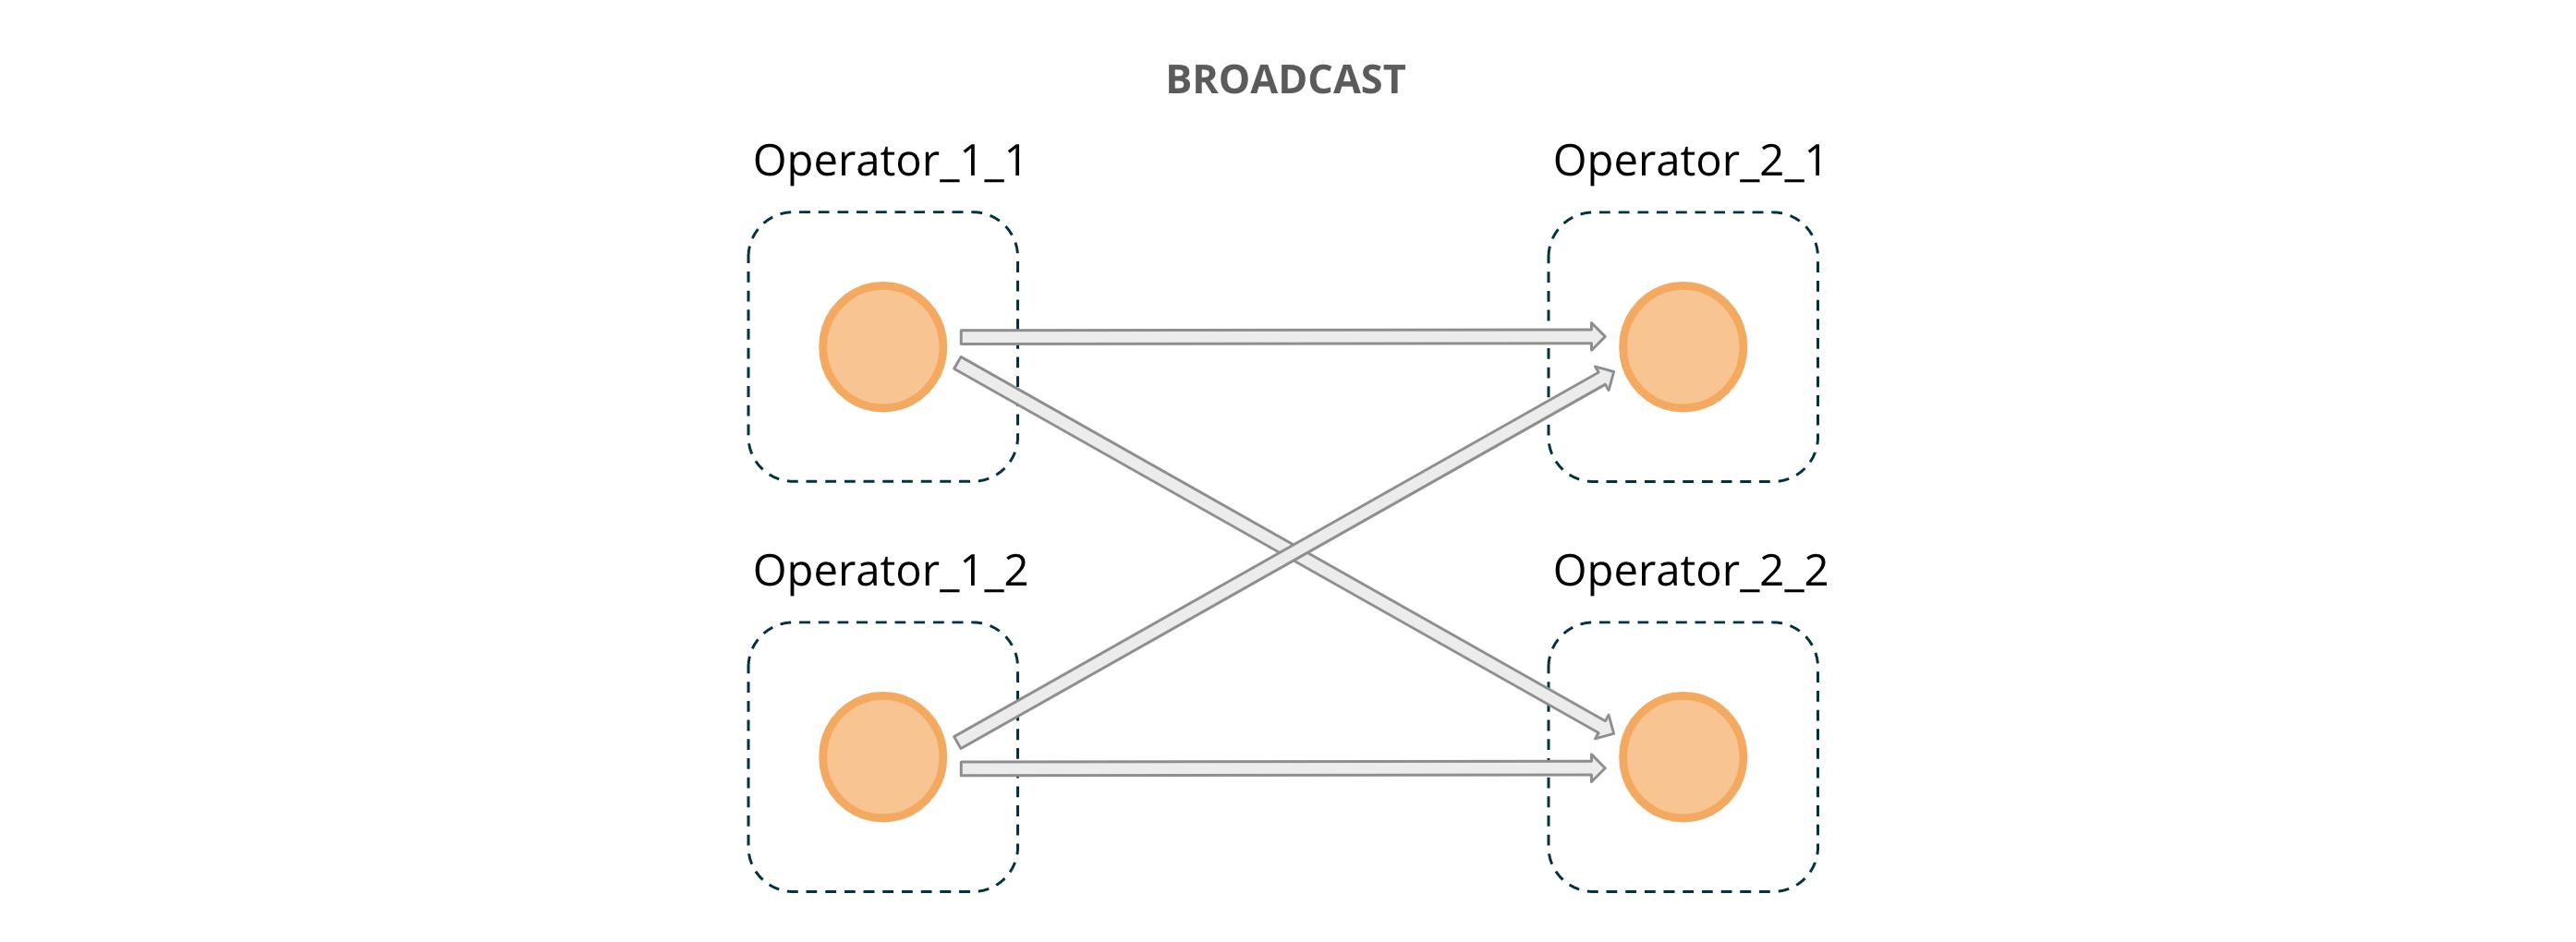 Figure 6: BROADCAST message passing across operator instances